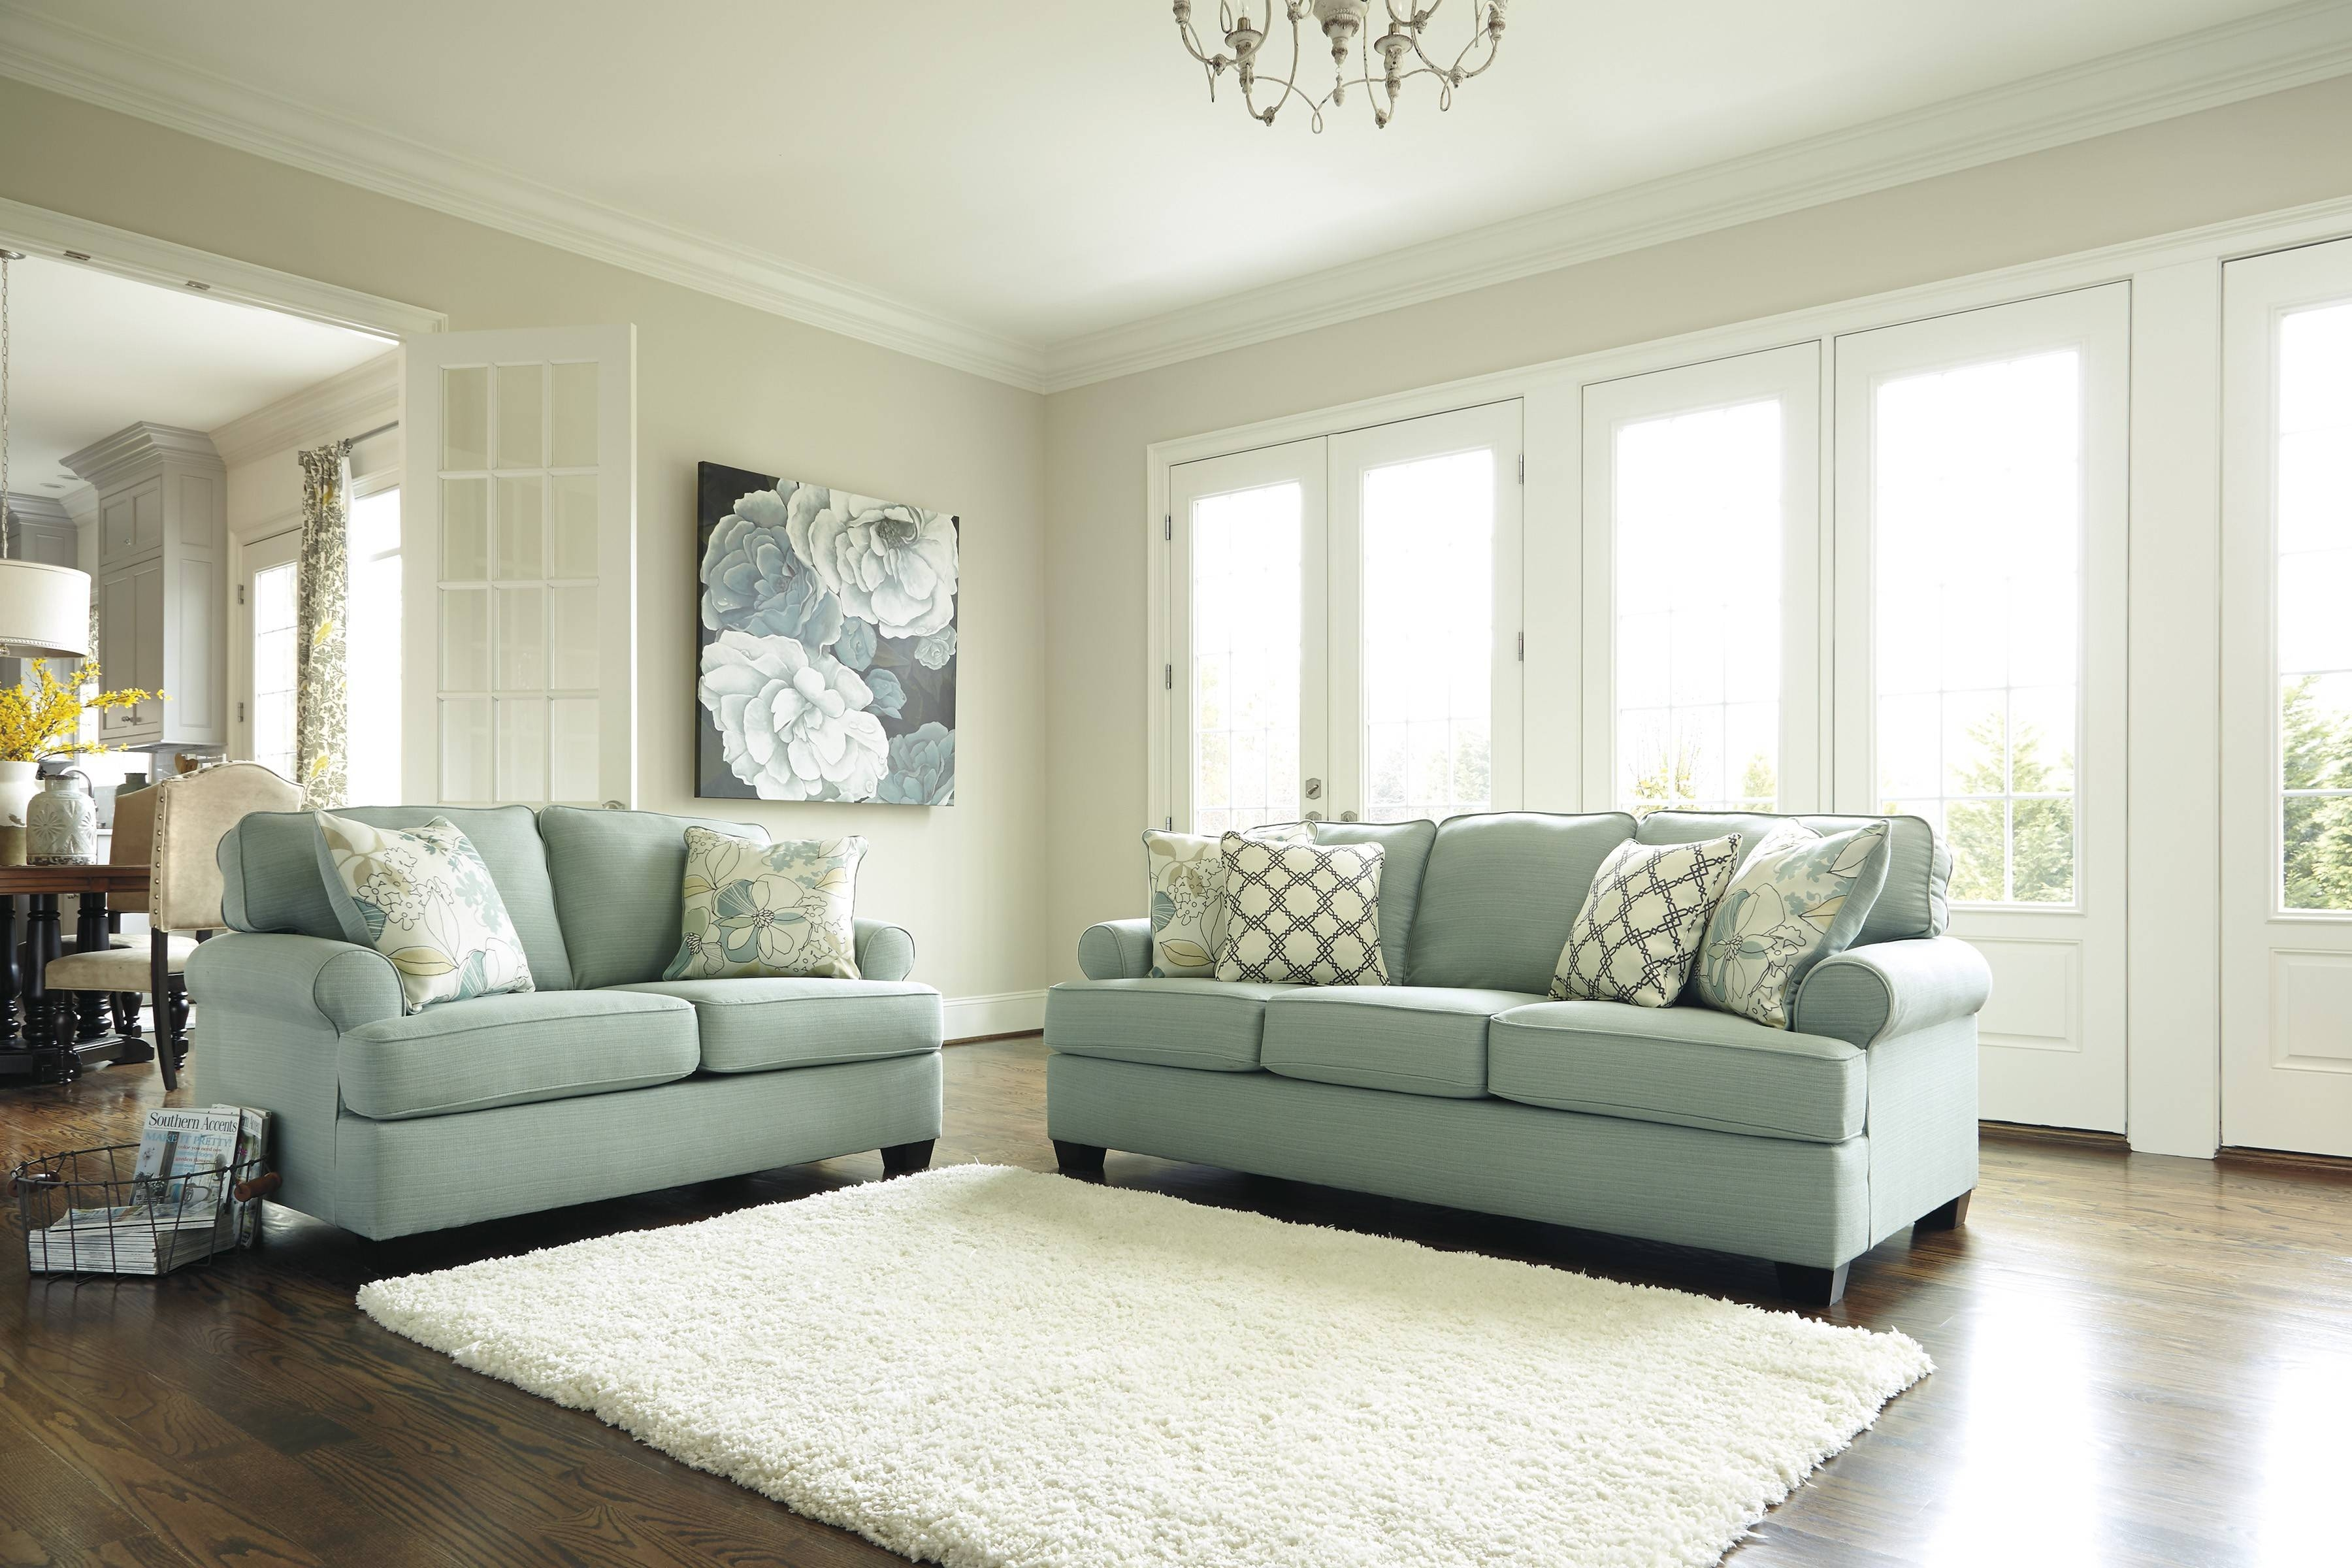 Ashley 2820038-35 Daystar-Seafoam Sofa Set | Cheny Furniture pertaining to Seafoam Green Sofas (Image 3 of 15)